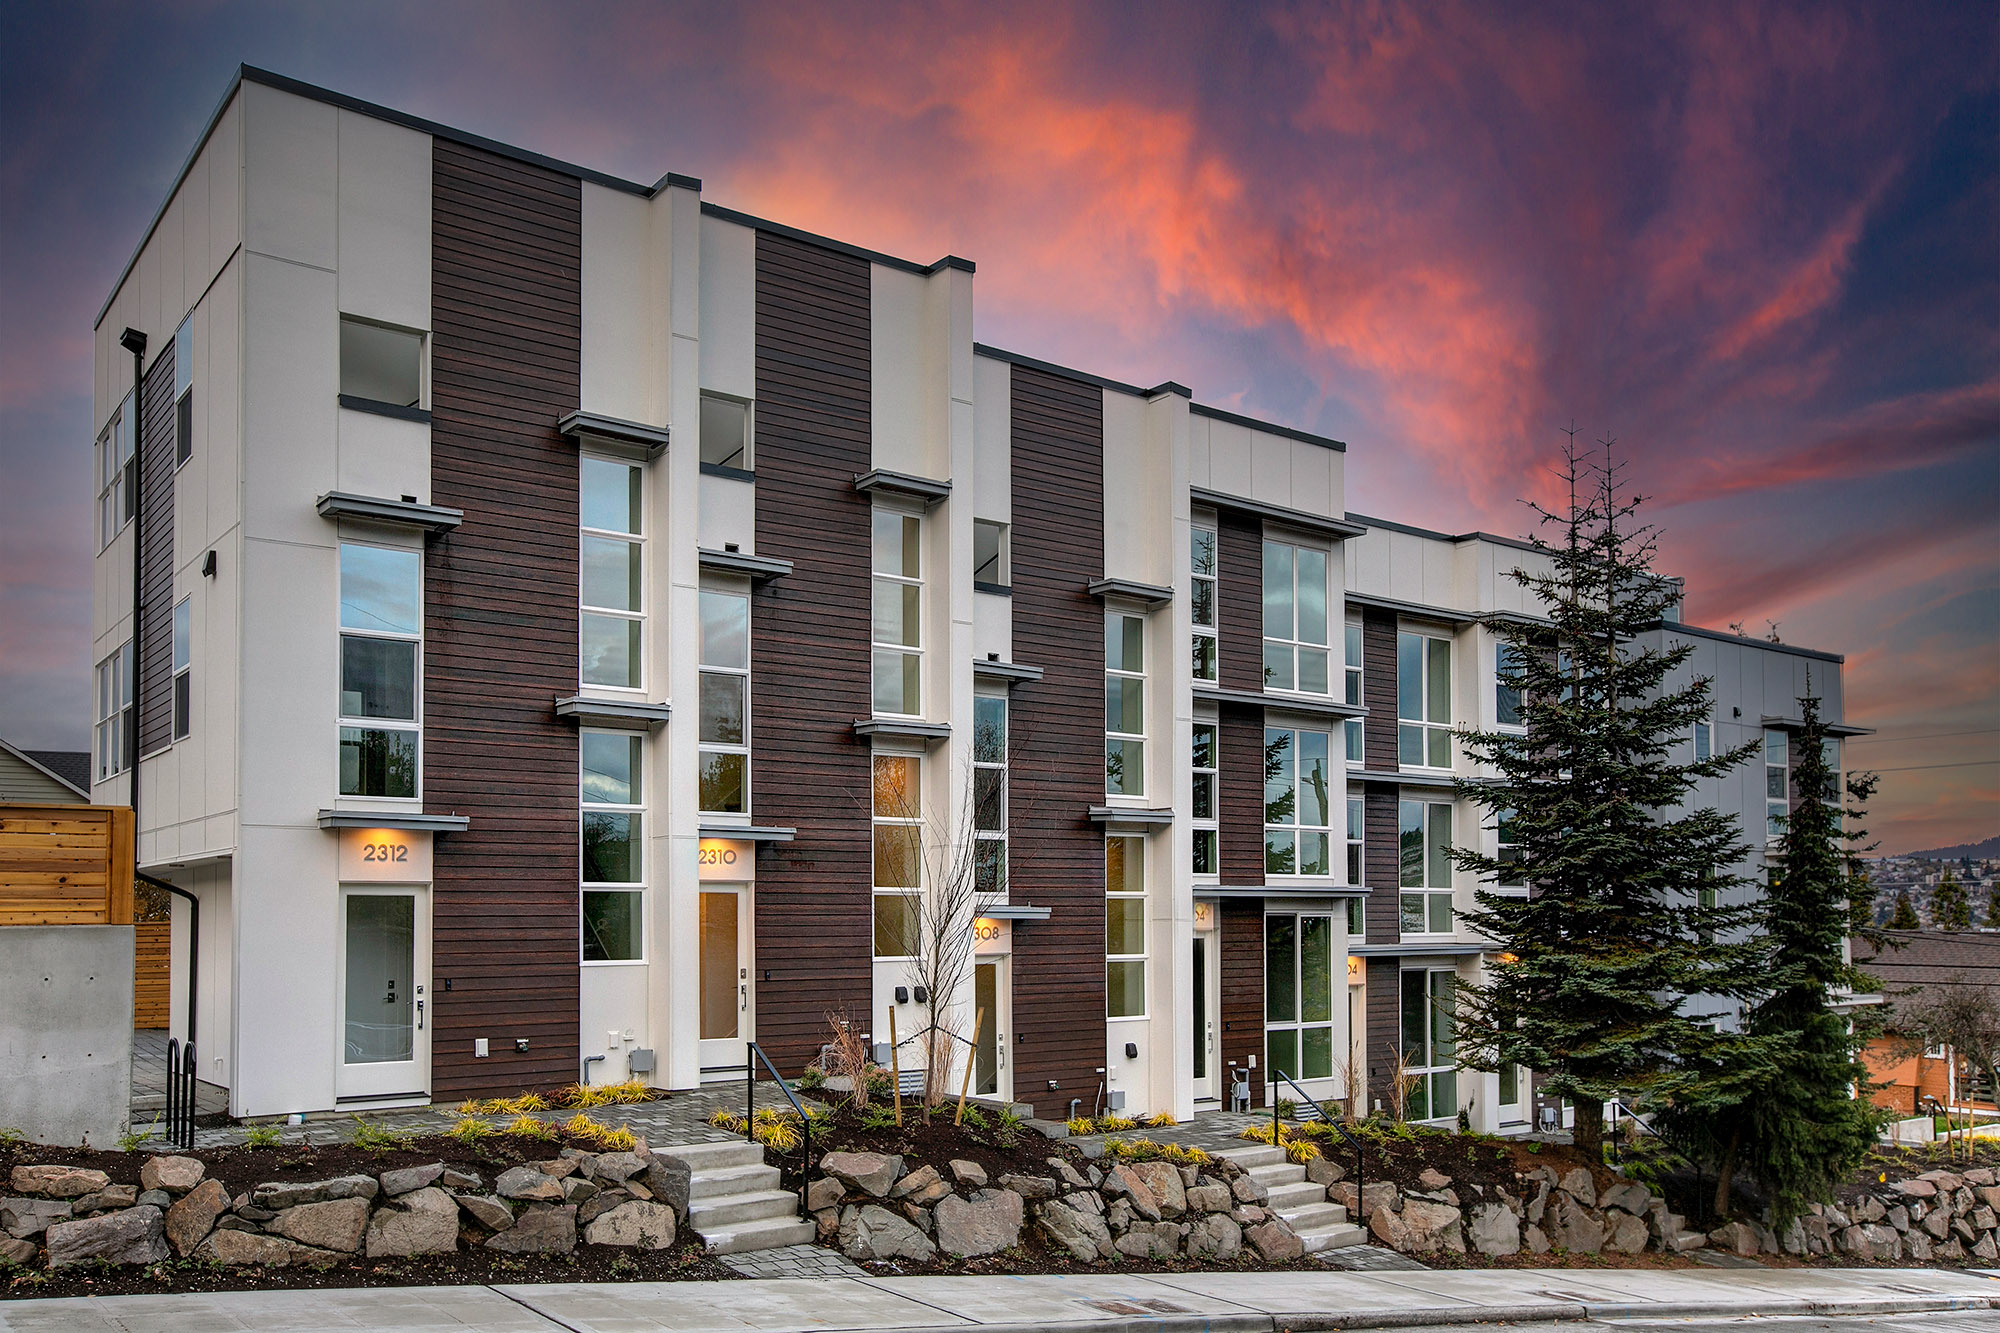 Walden Townhomes in Magnolia